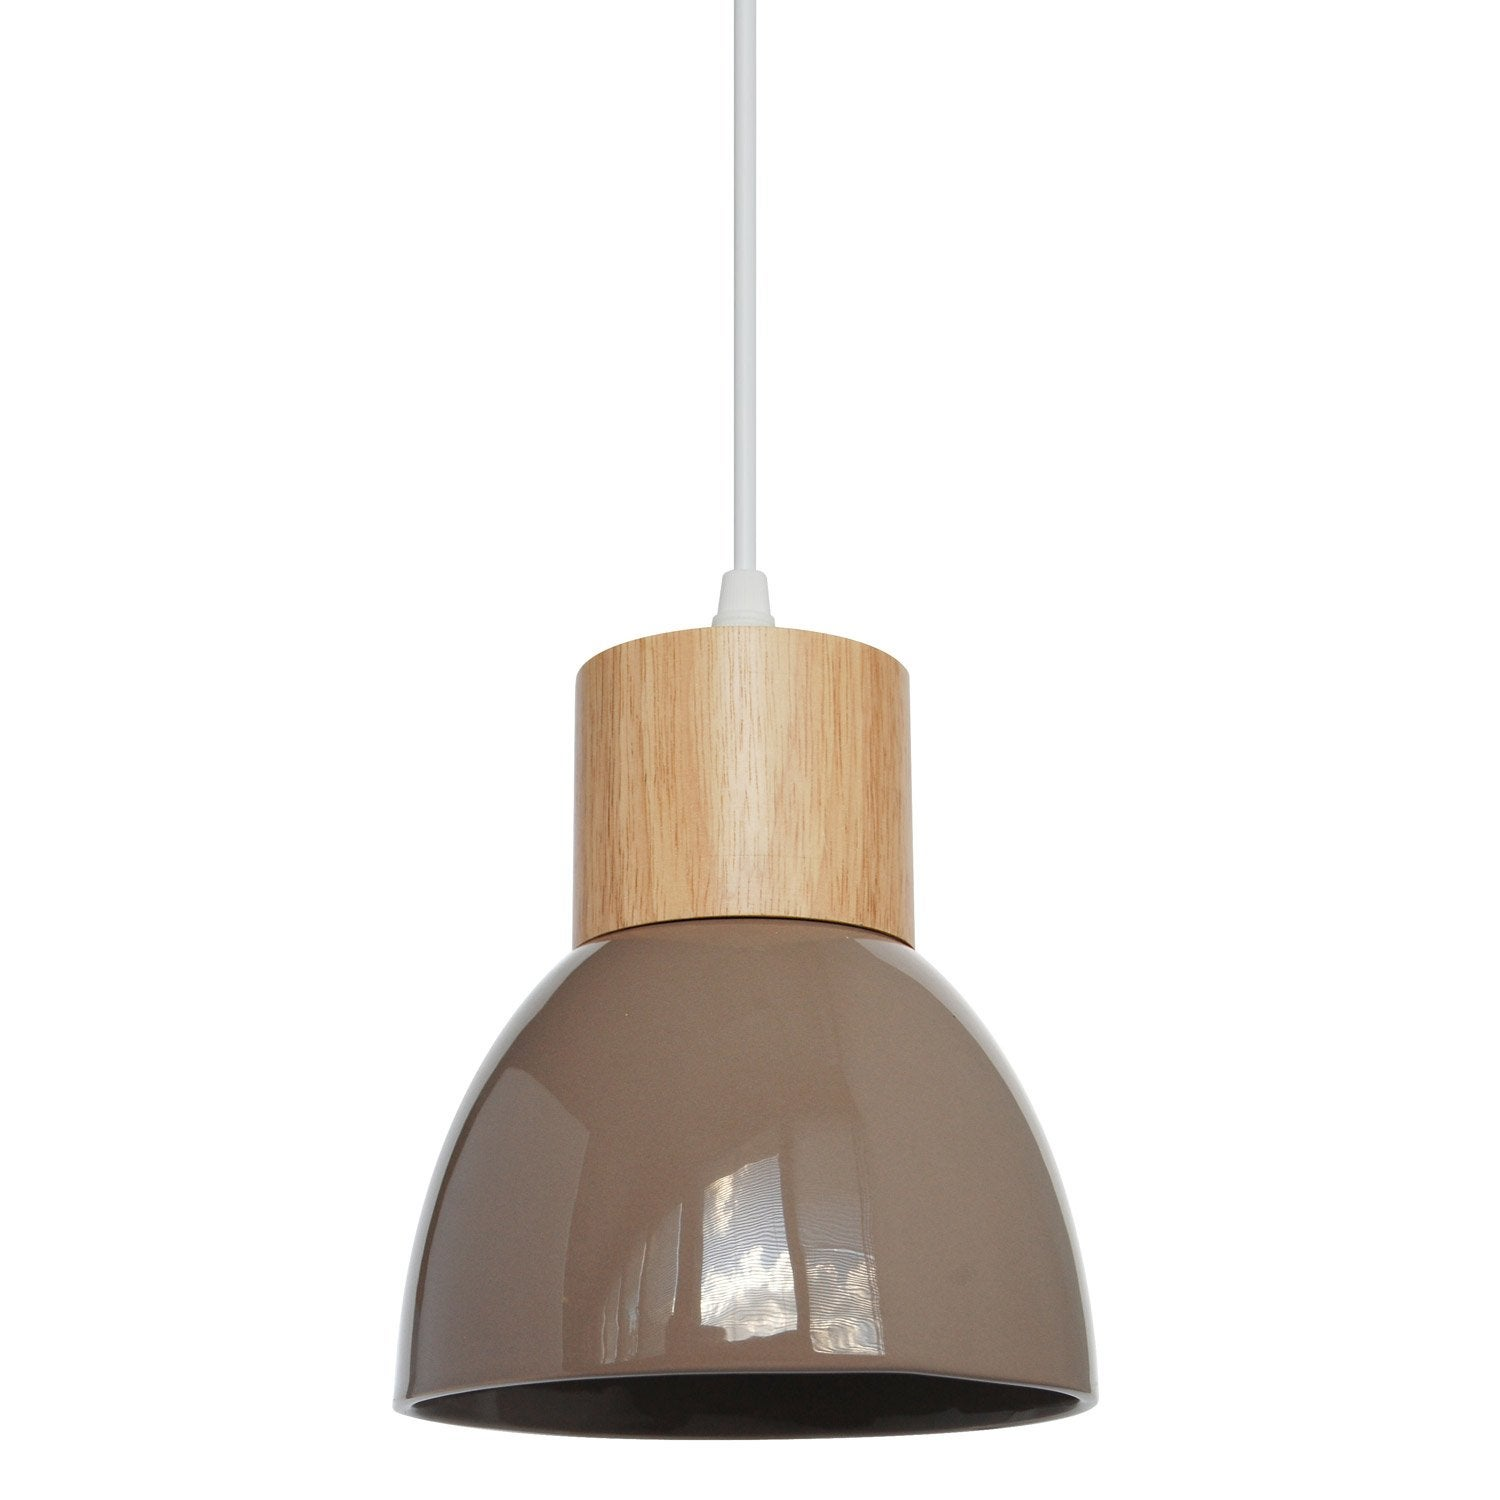 Suspension e14 design wilma c ramique chanvre 1 x 40 w seynave leroy merlin - Suspension new york leroy merlin ...